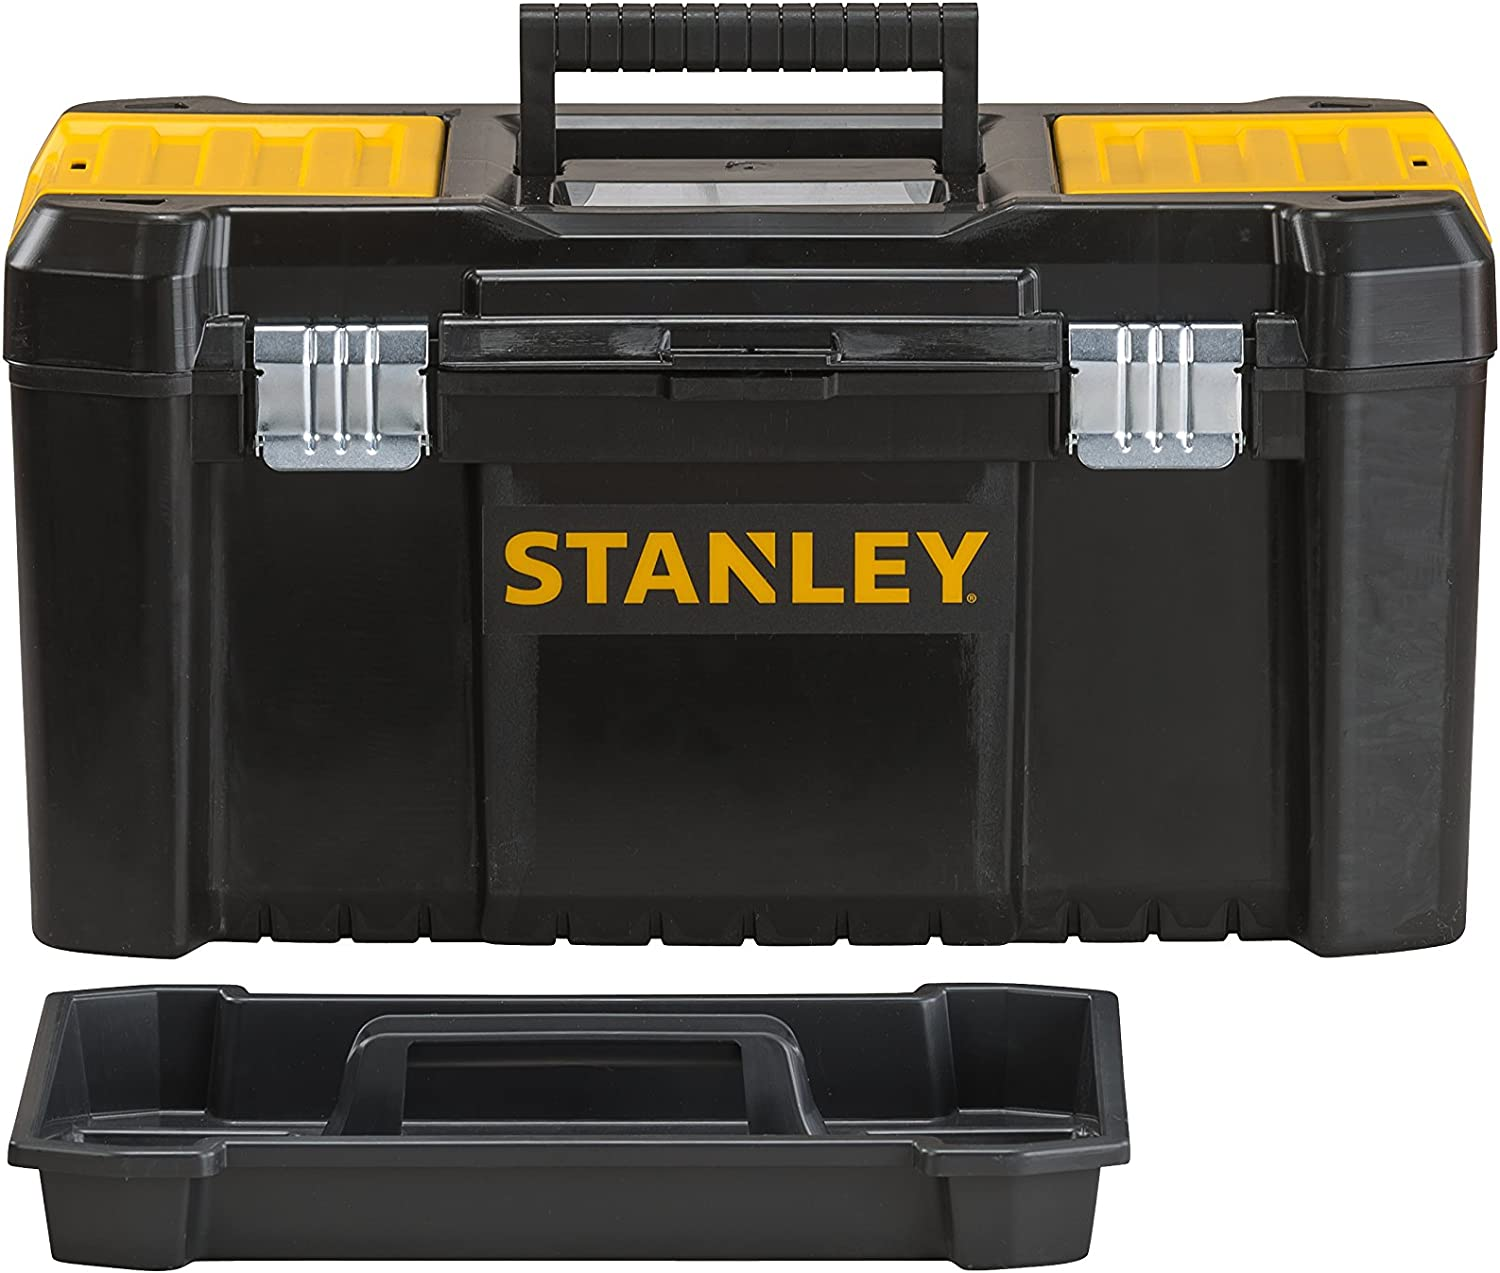 Inch Black//Yellow Stanley STST1-75521 Essential 19 Toolbox with Metal latches